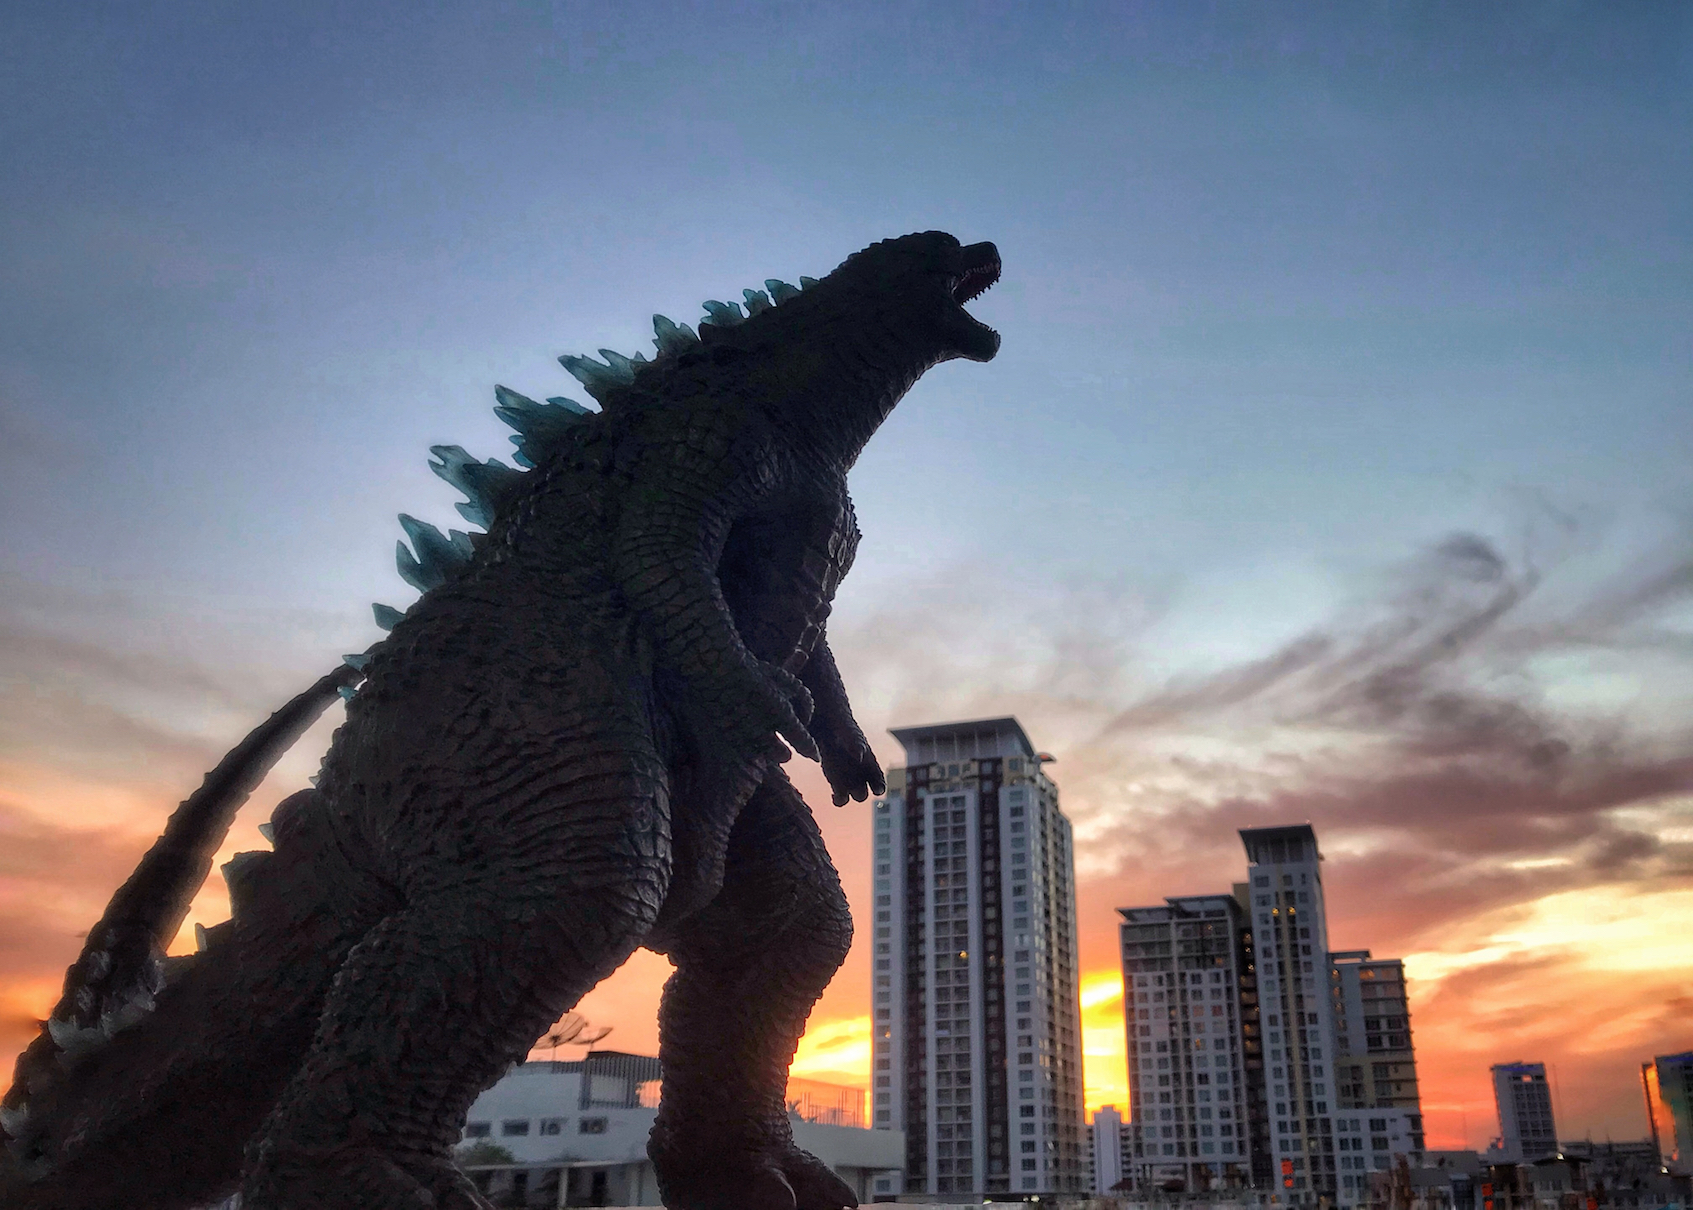 Godzilla has evolved 30 times faster than any other animal on ...